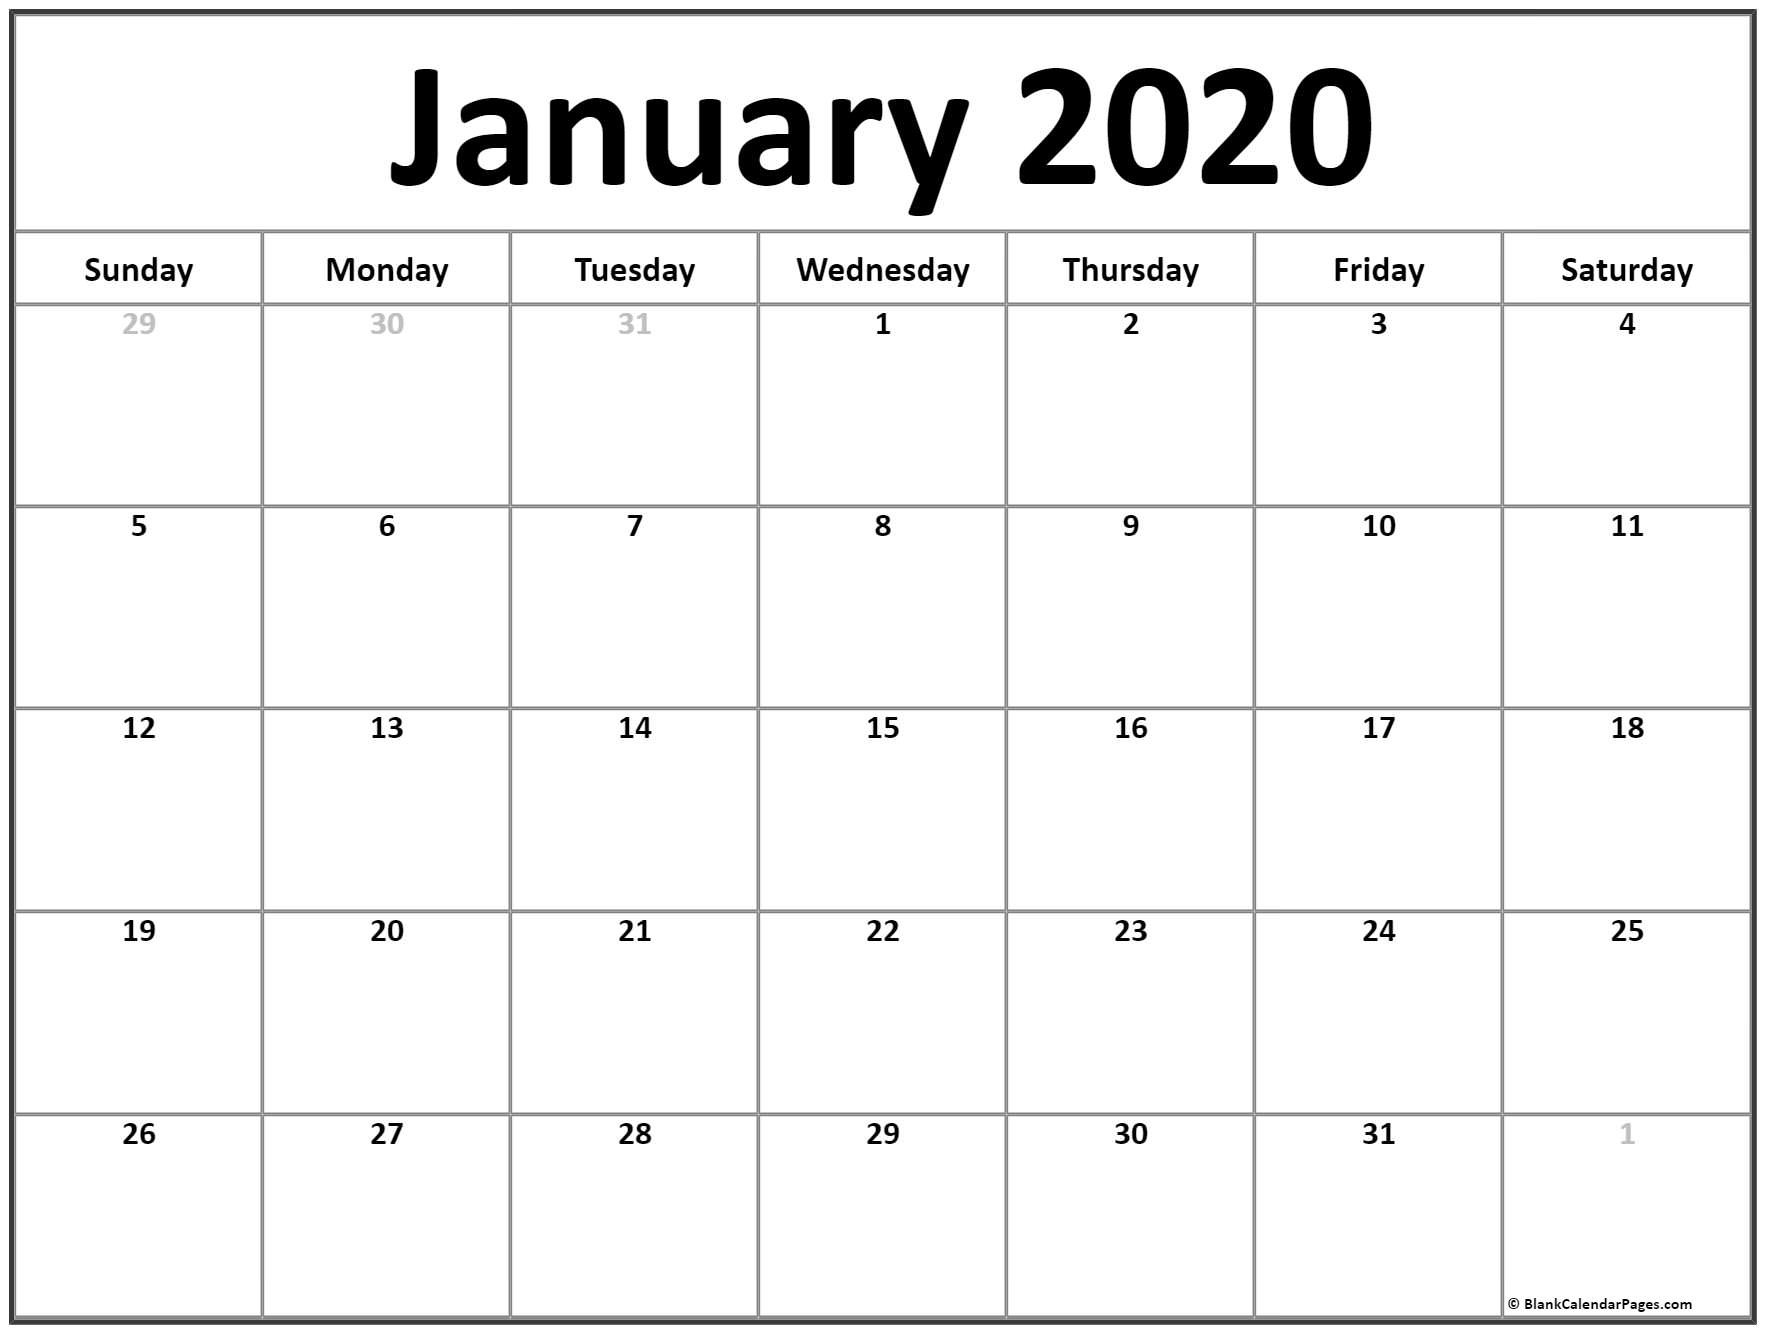 Editable Calendar January 2020 - Wpa.wpart.co